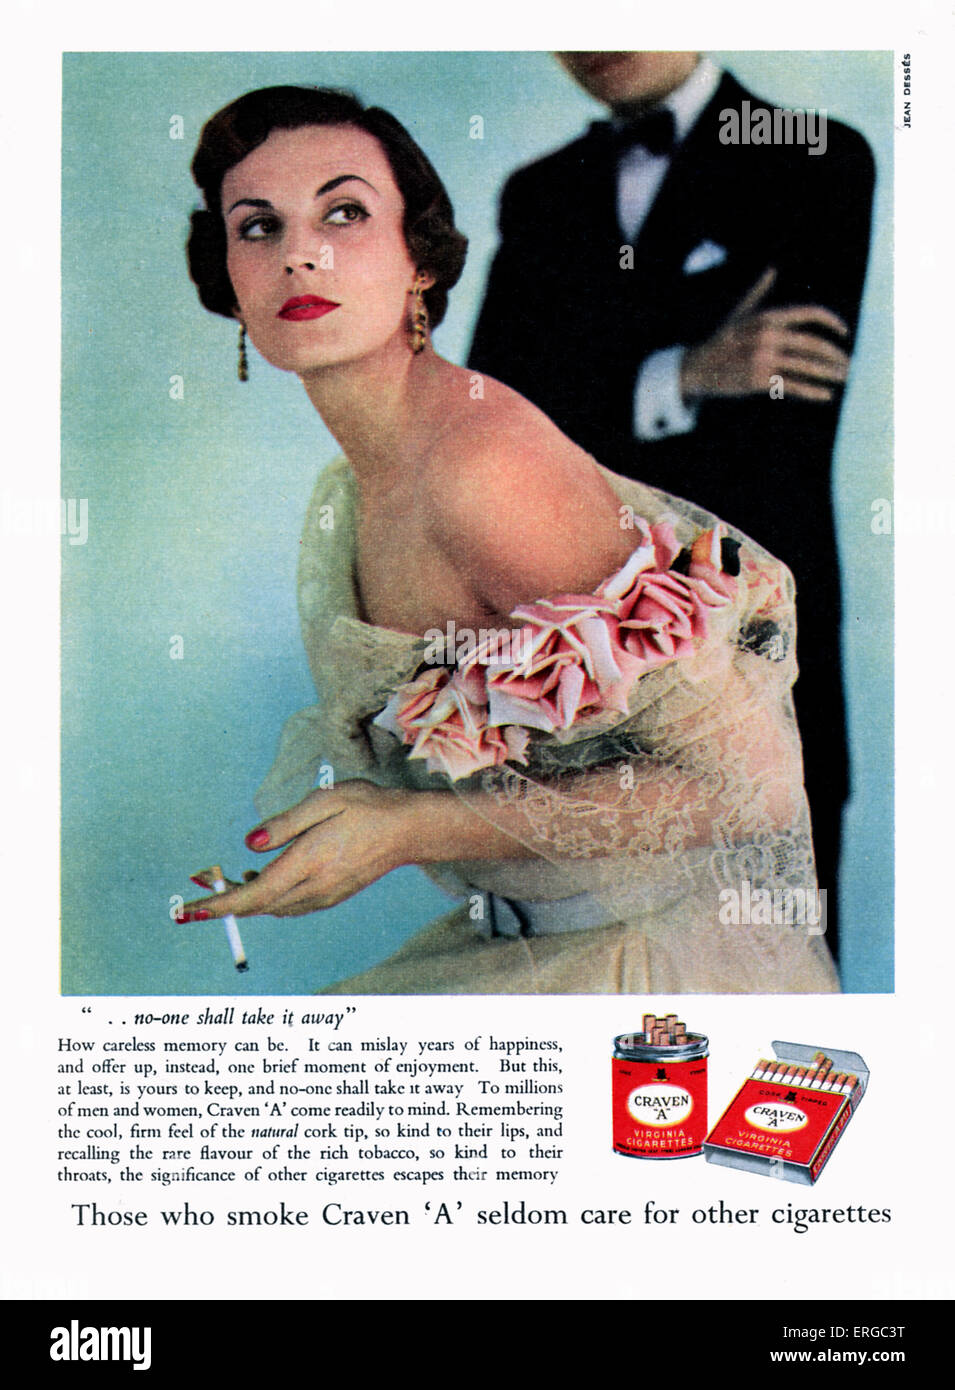 Advertisement for Craven 'A' cigarettes, 1950s. Glamorous woman in evening dress with cigarette. - Stock Image